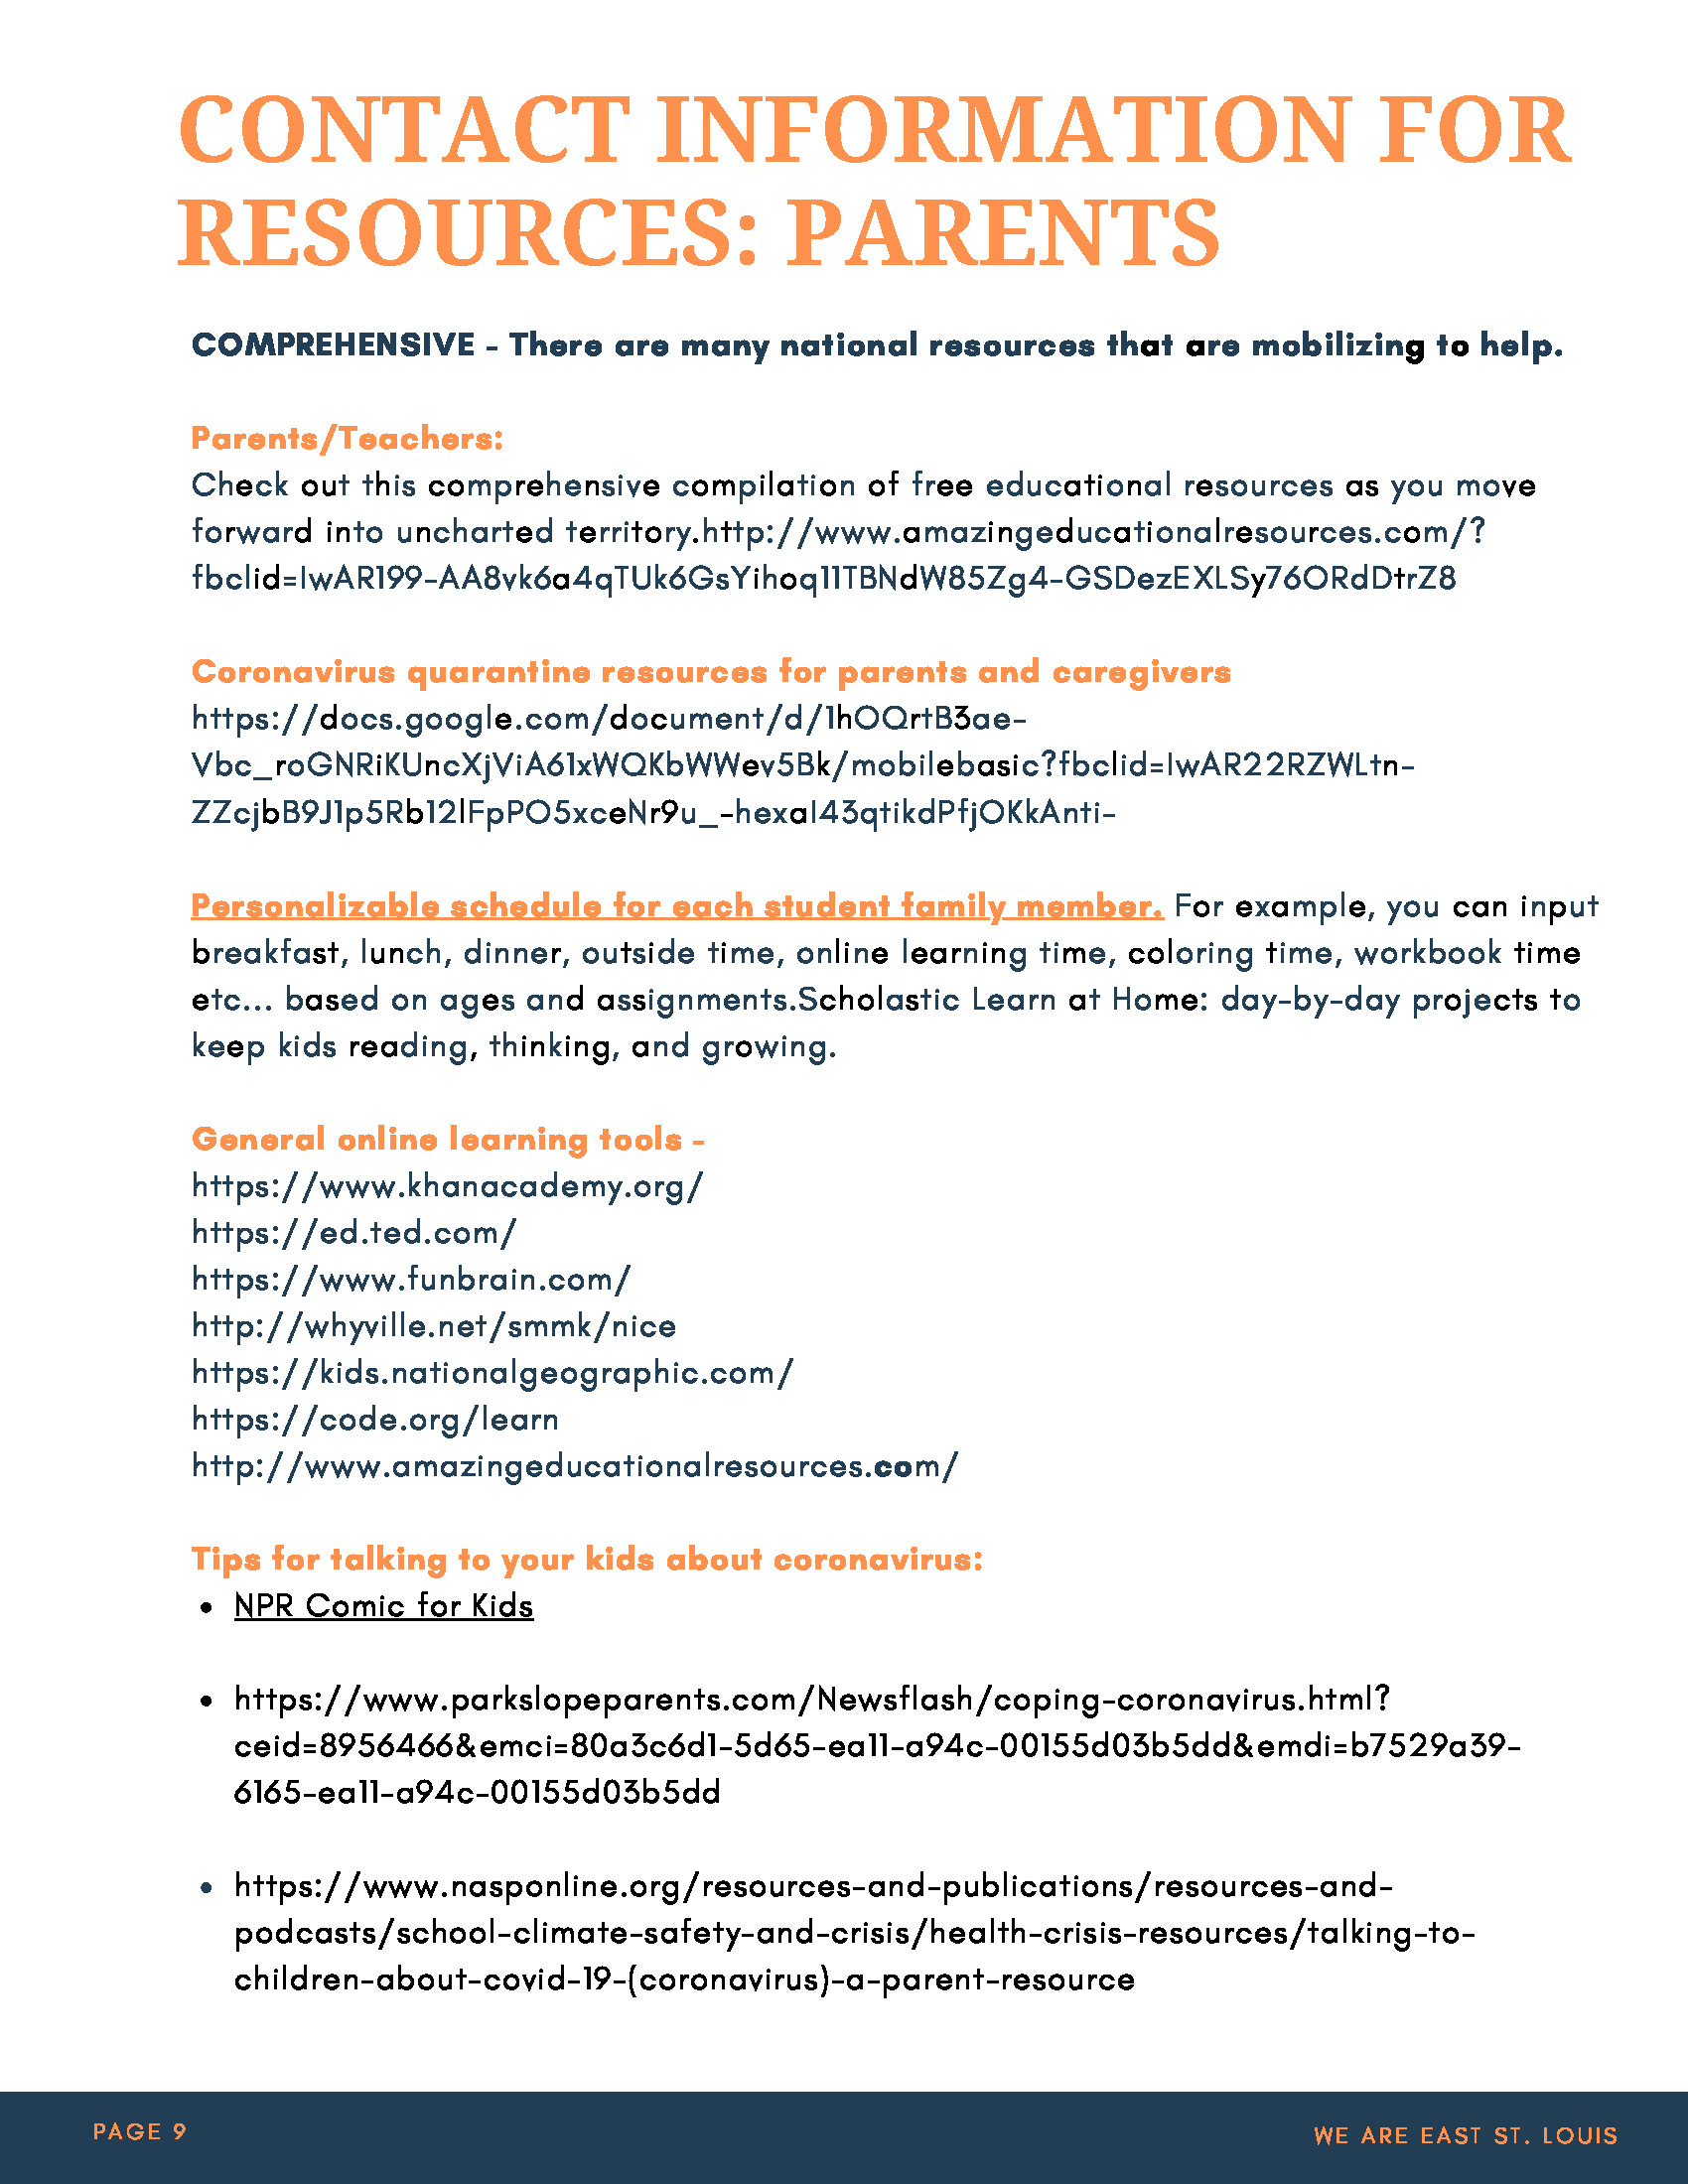 EAST ST LOUIS - COVID-19 RESOURCE GUIDE Update_Page_09